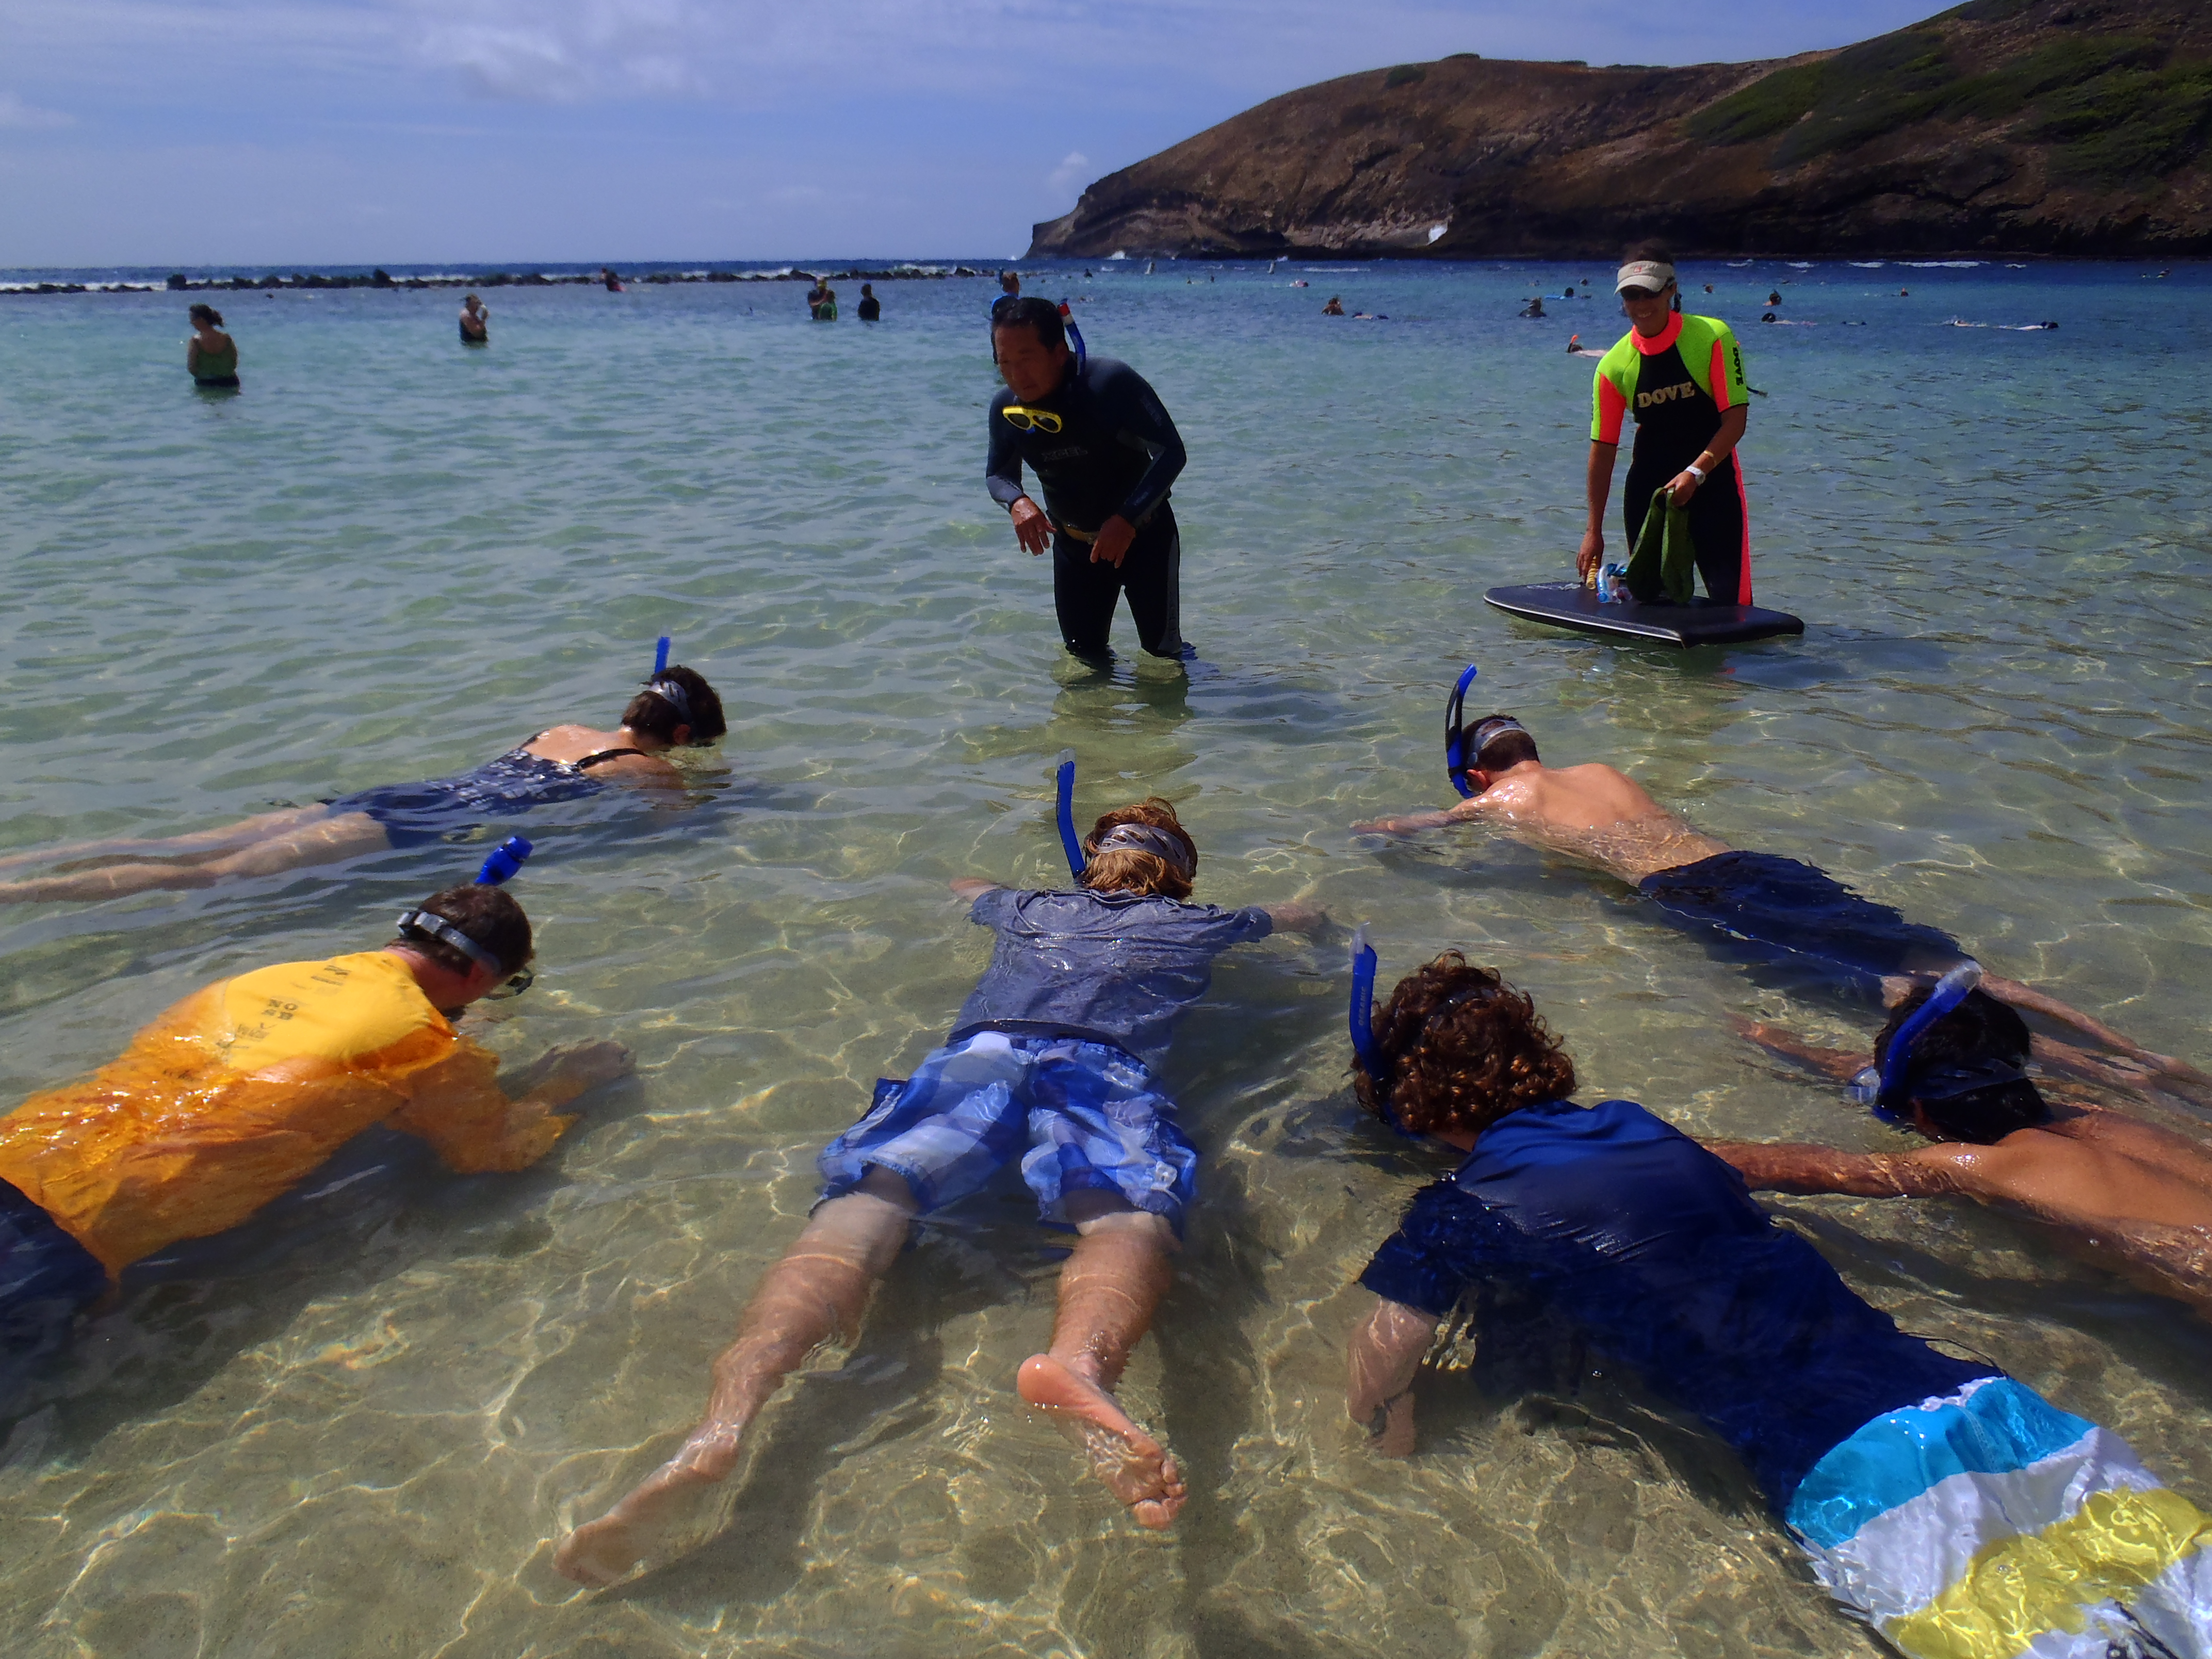 <p>Alan Hong teaches people how to snorkel at Hanauma Bay, where being male, in your 50s or 60s, and having pre-existing heart conditions are common traits among drowning victims.</p>